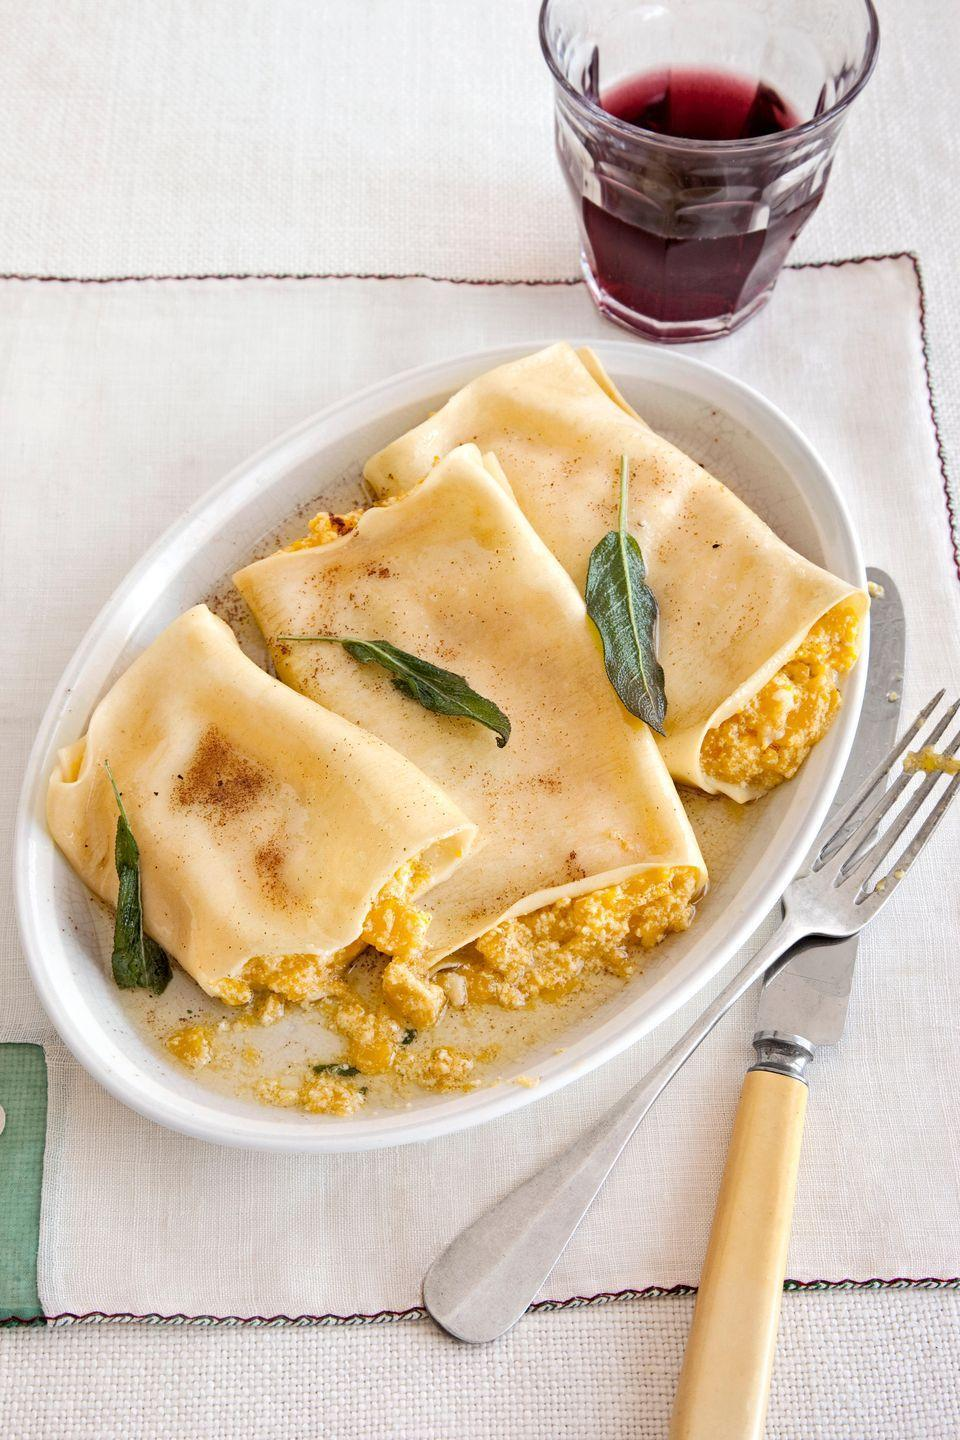 """<p>No need to make fresh pasta for these silky ricotta-pumpkin cannelloni—oven-ready lasagna sheets work just fine.</p><p><strong><a href=""""https://www.countryliving.com/food-drinks/recipes/a2995/pumpkin-cannelloni-sage-brown-butter-sauce-recipe/"""" rel=""""nofollow noopener"""" target=""""_blank"""" data-ylk=""""slk:Get the recipe"""" class=""""link rapid-noclick-resp"""">Get the recipe</a>.</strong><br></p><p><a class=""""link rapid-noclick-resp"""" href=""""https://www.amazon.com/Pyrex-Basics-Oblong-Baking-Plastic/dp/B01IUKIPYY?tag=syn-yahoo-20&ascsubtag=%5Bartid%7C10050.g.619%5Bsrc%7Cyahoo-us"""" rel=""""nofollow noopener"""" target=""""_blank"""" data-ylk=""""slk:SHOP BAKING DISHES"""">SHOP BAKING DISHES</a></p>"""